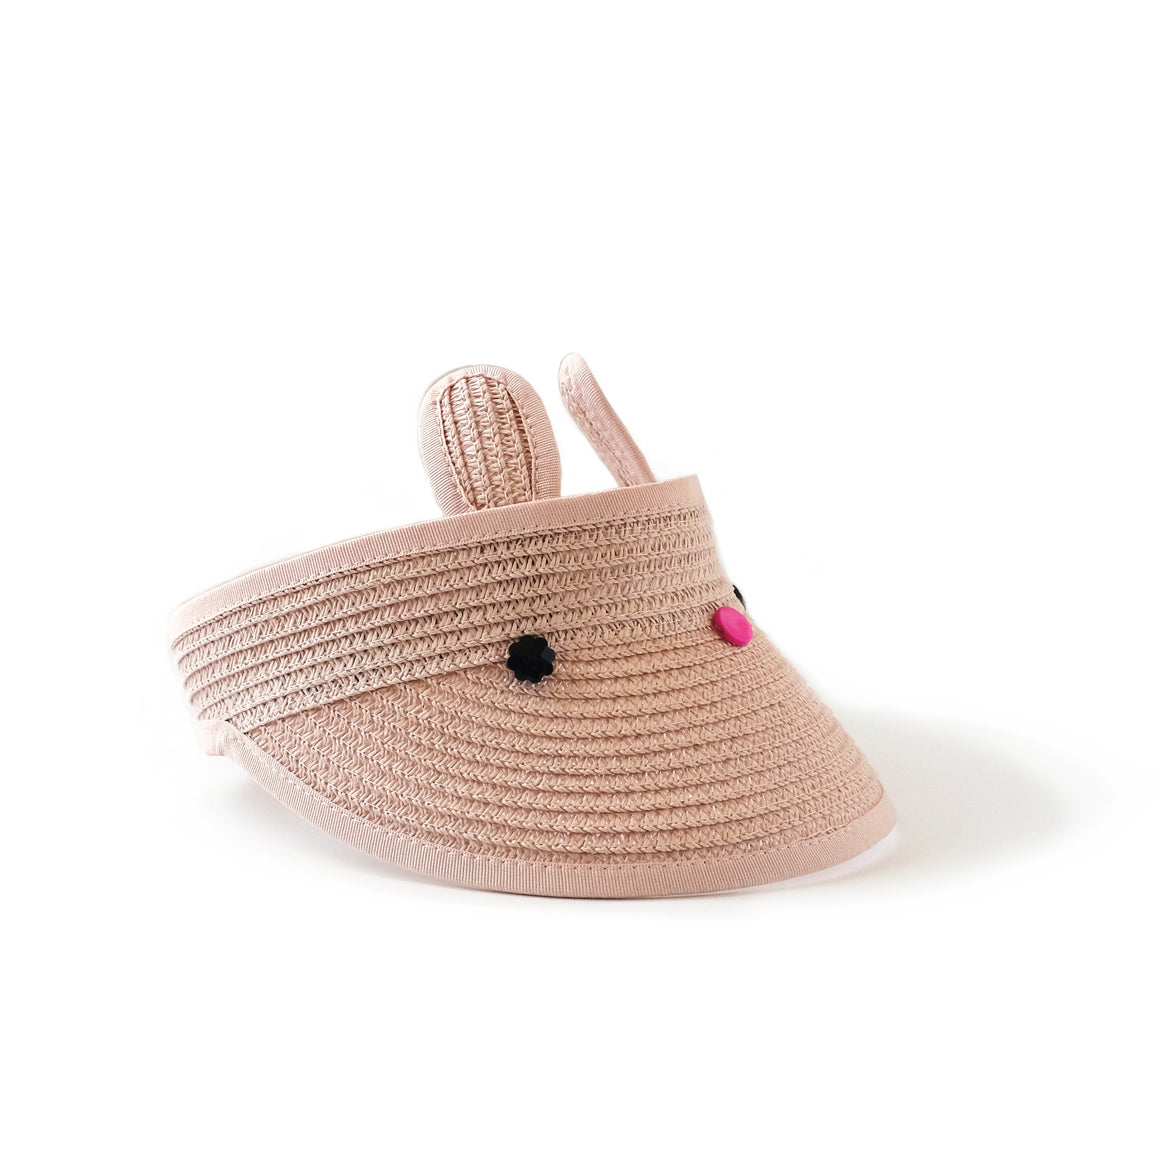 bunny visor in pink // hello shiso hair accessories for girls